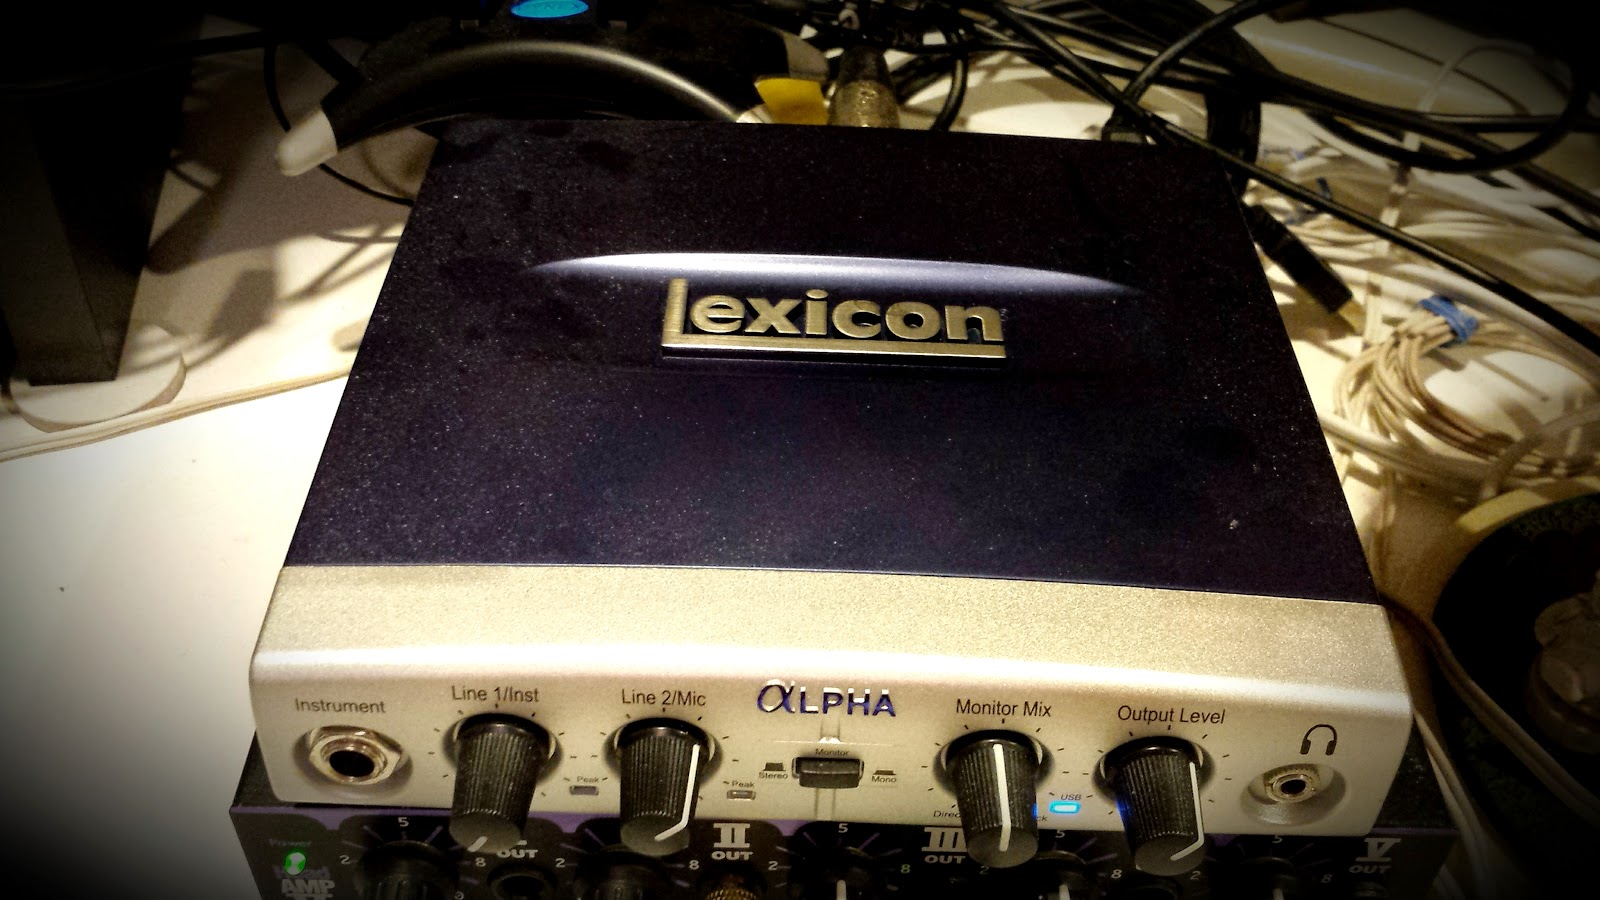 Lexicon Alpha External Sound Card